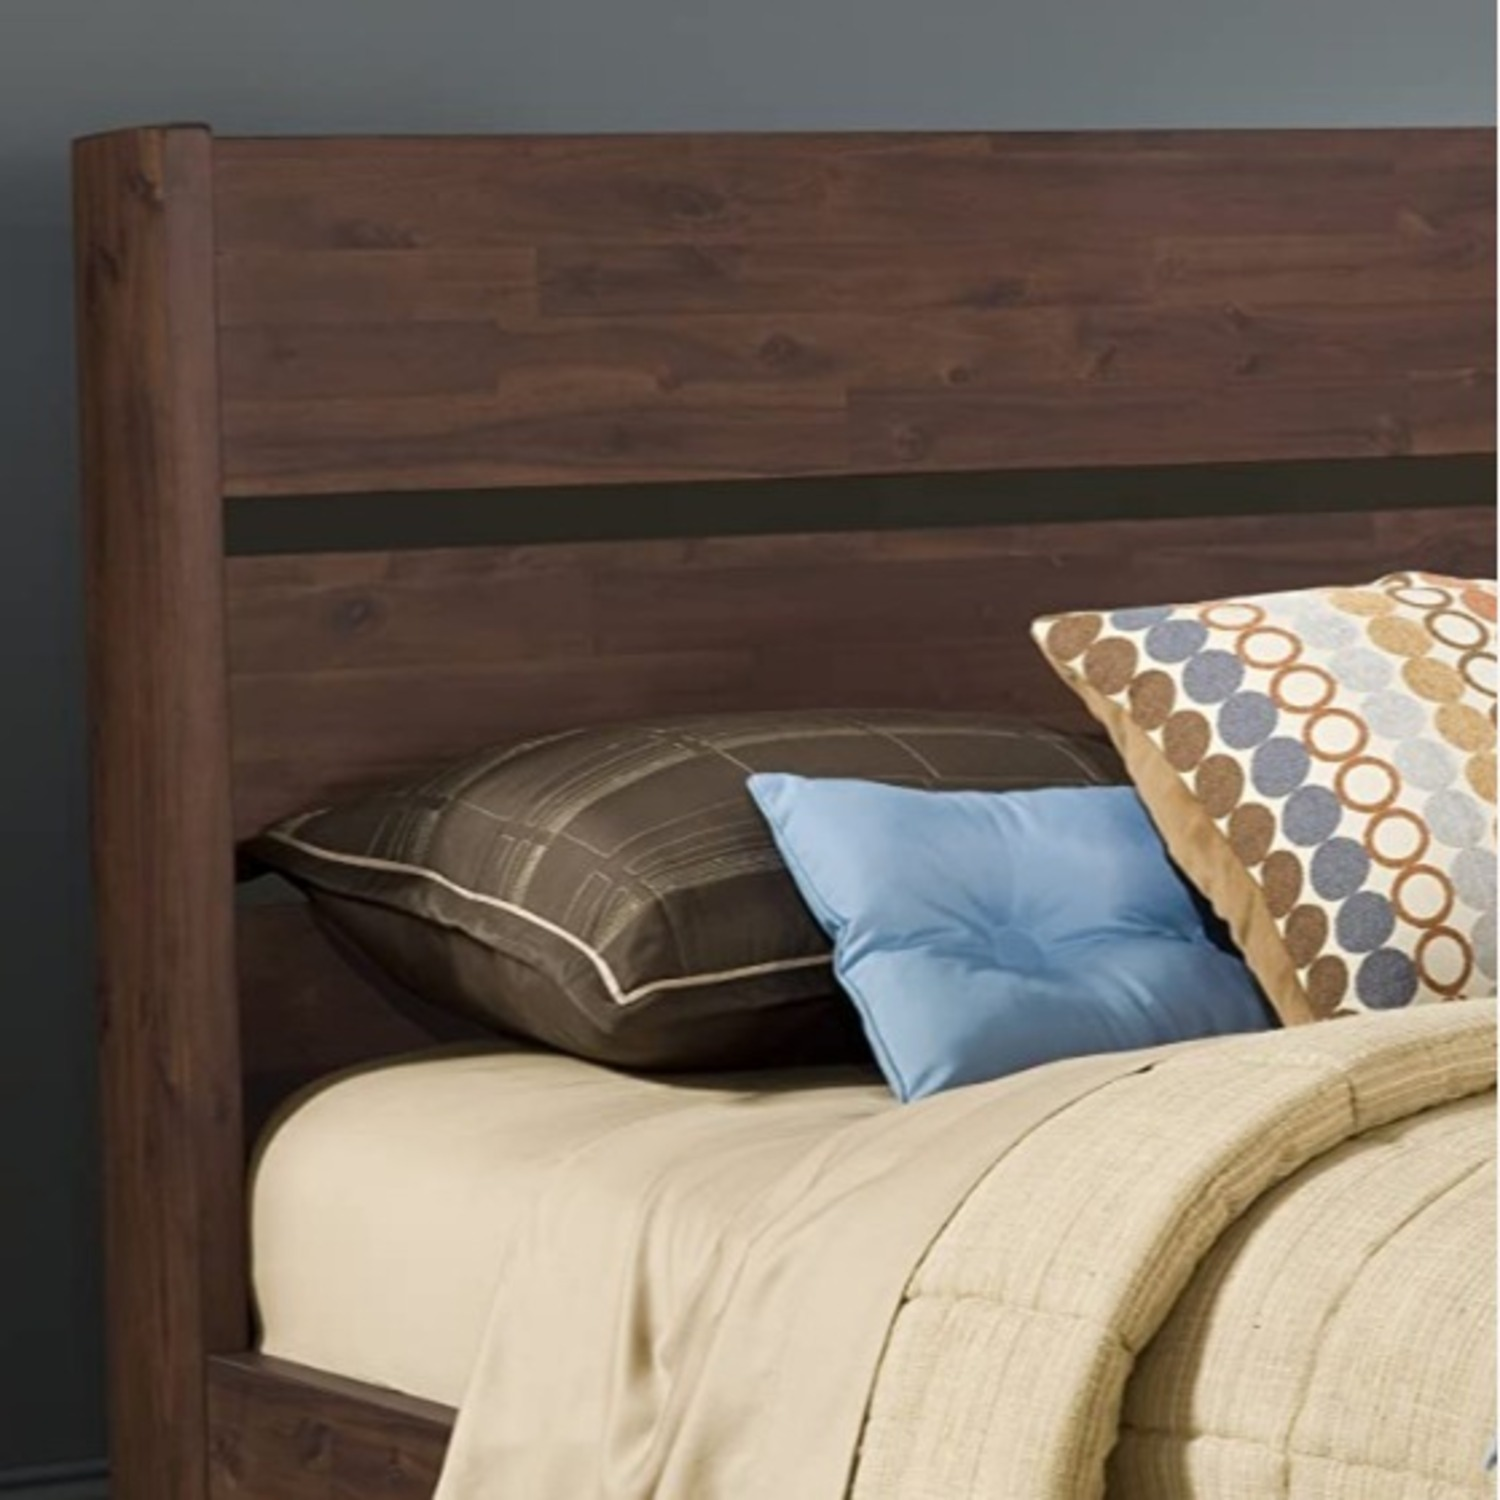 Modus Furniture Solid Wood Queen Bed - image-5